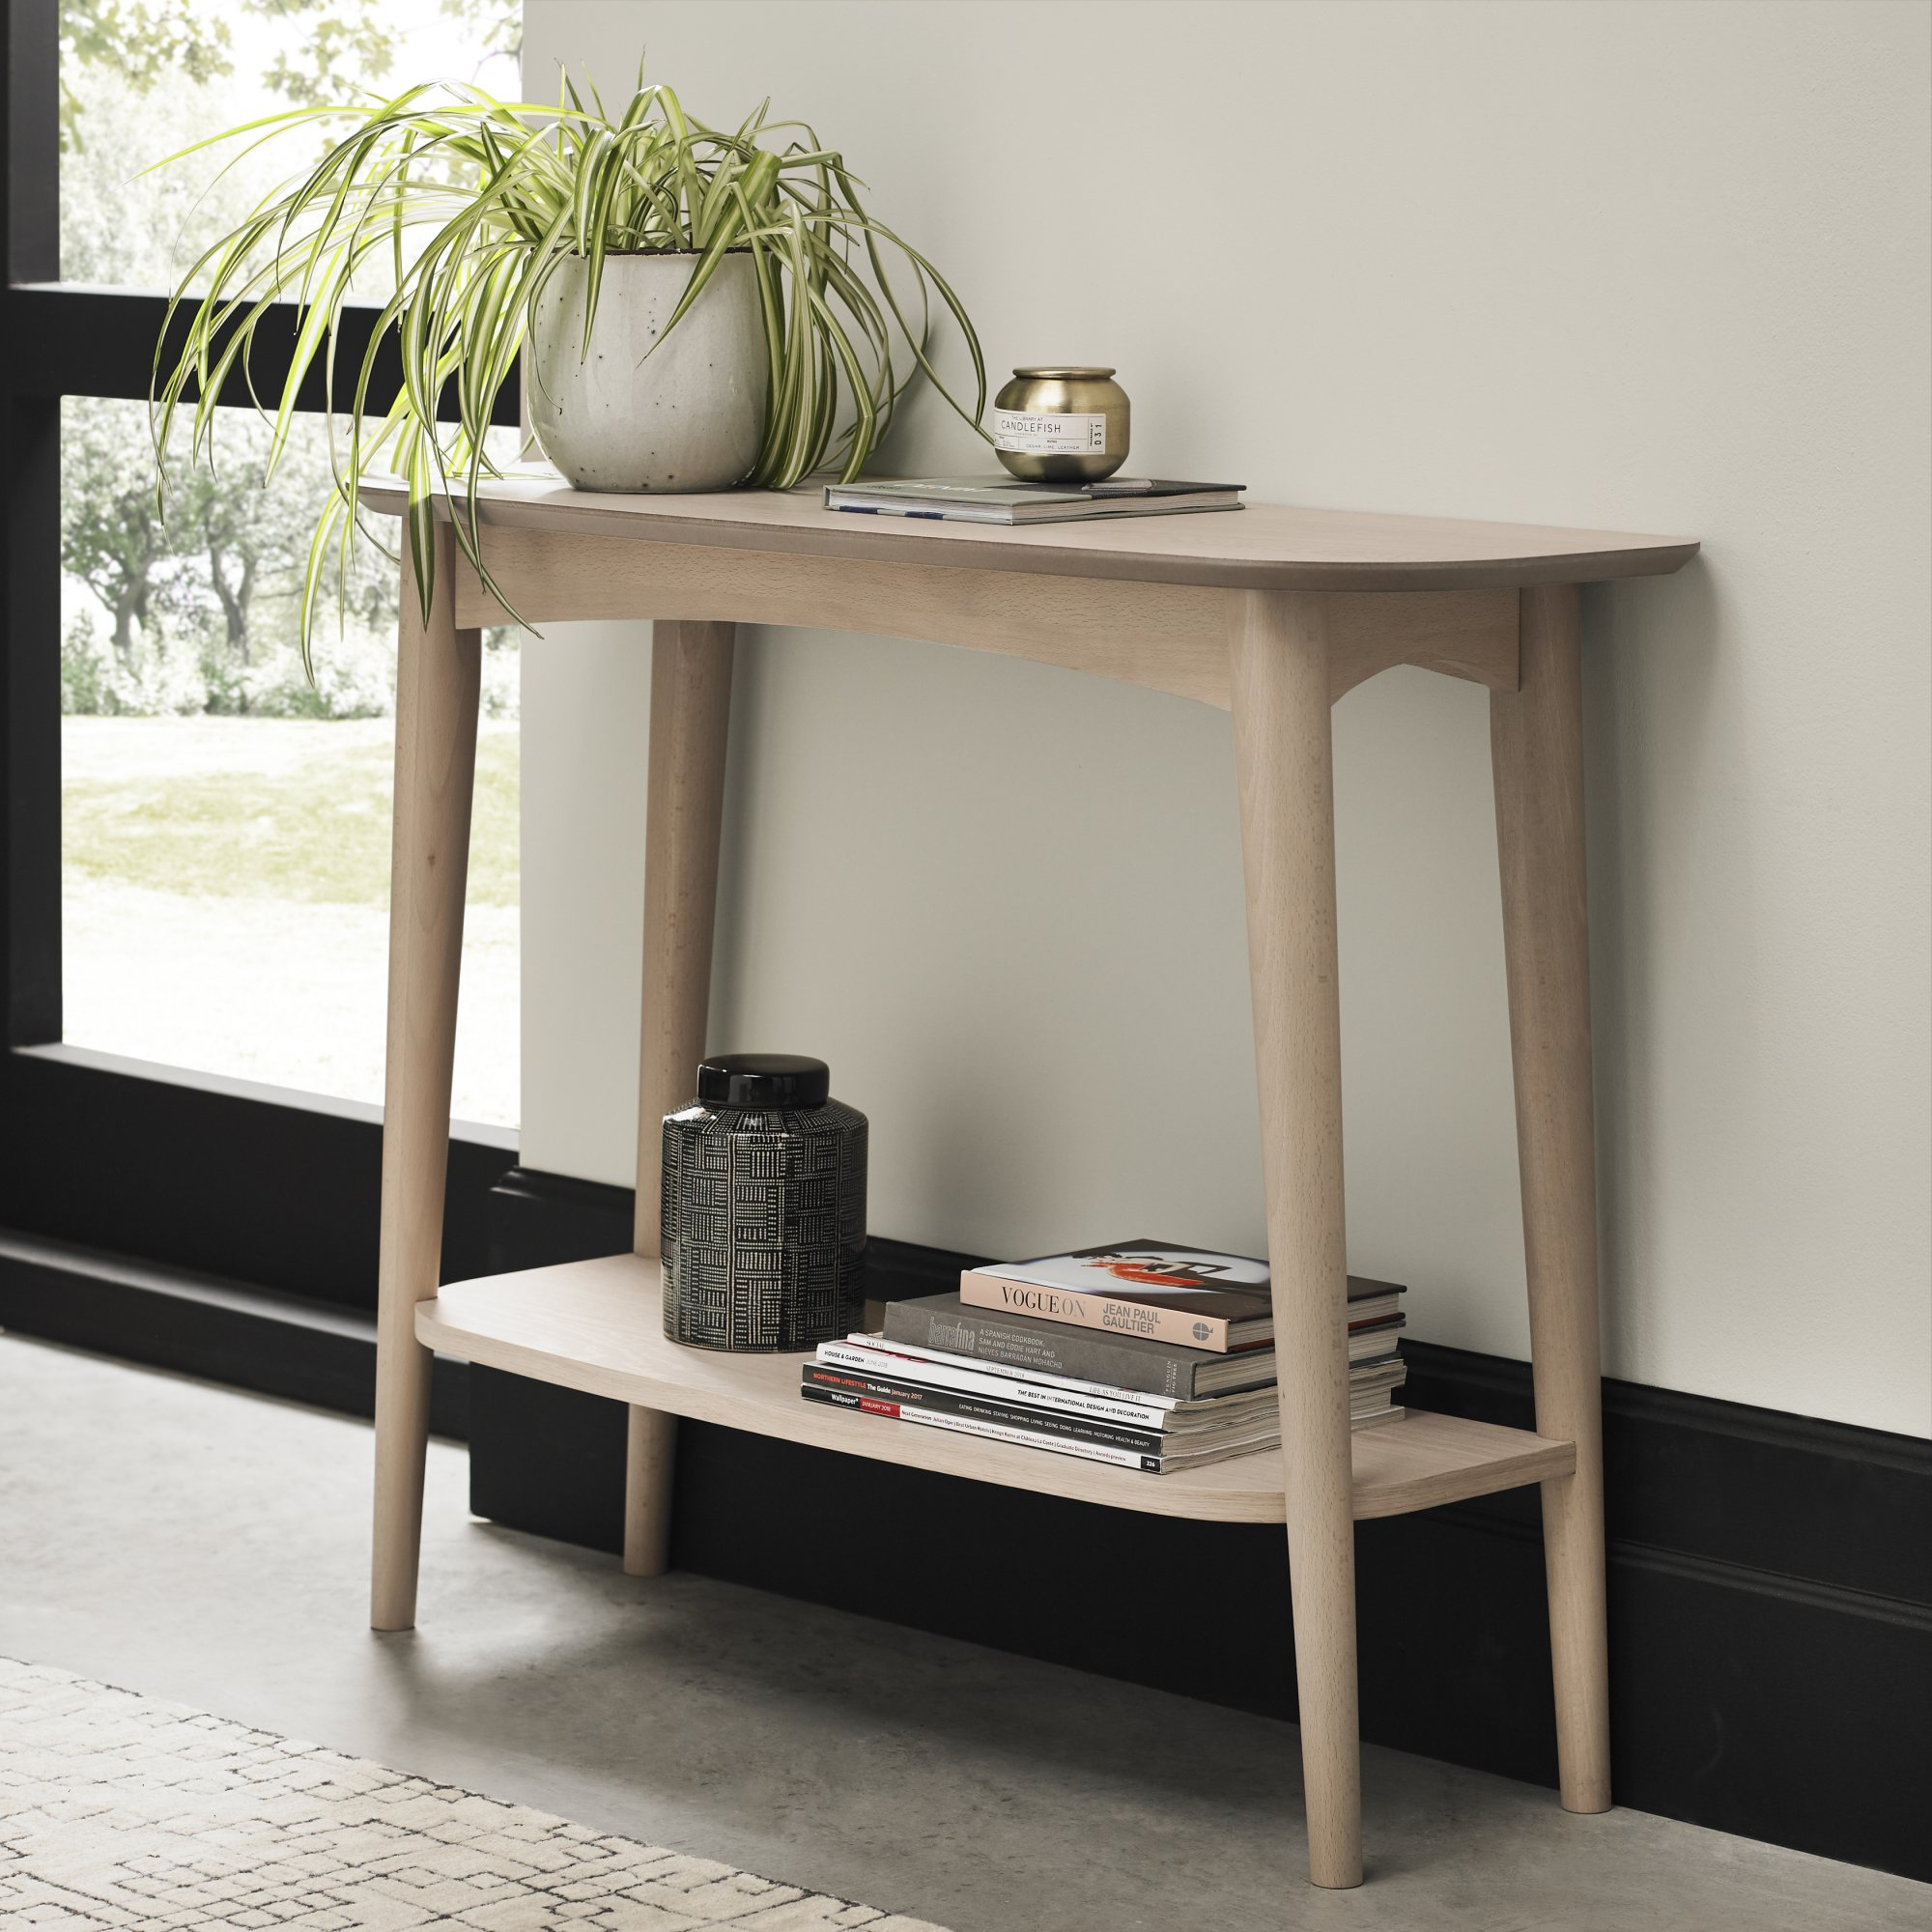 RETRO OAK CONSOLE WITH SHELF L97cm x D35cm x H77cm